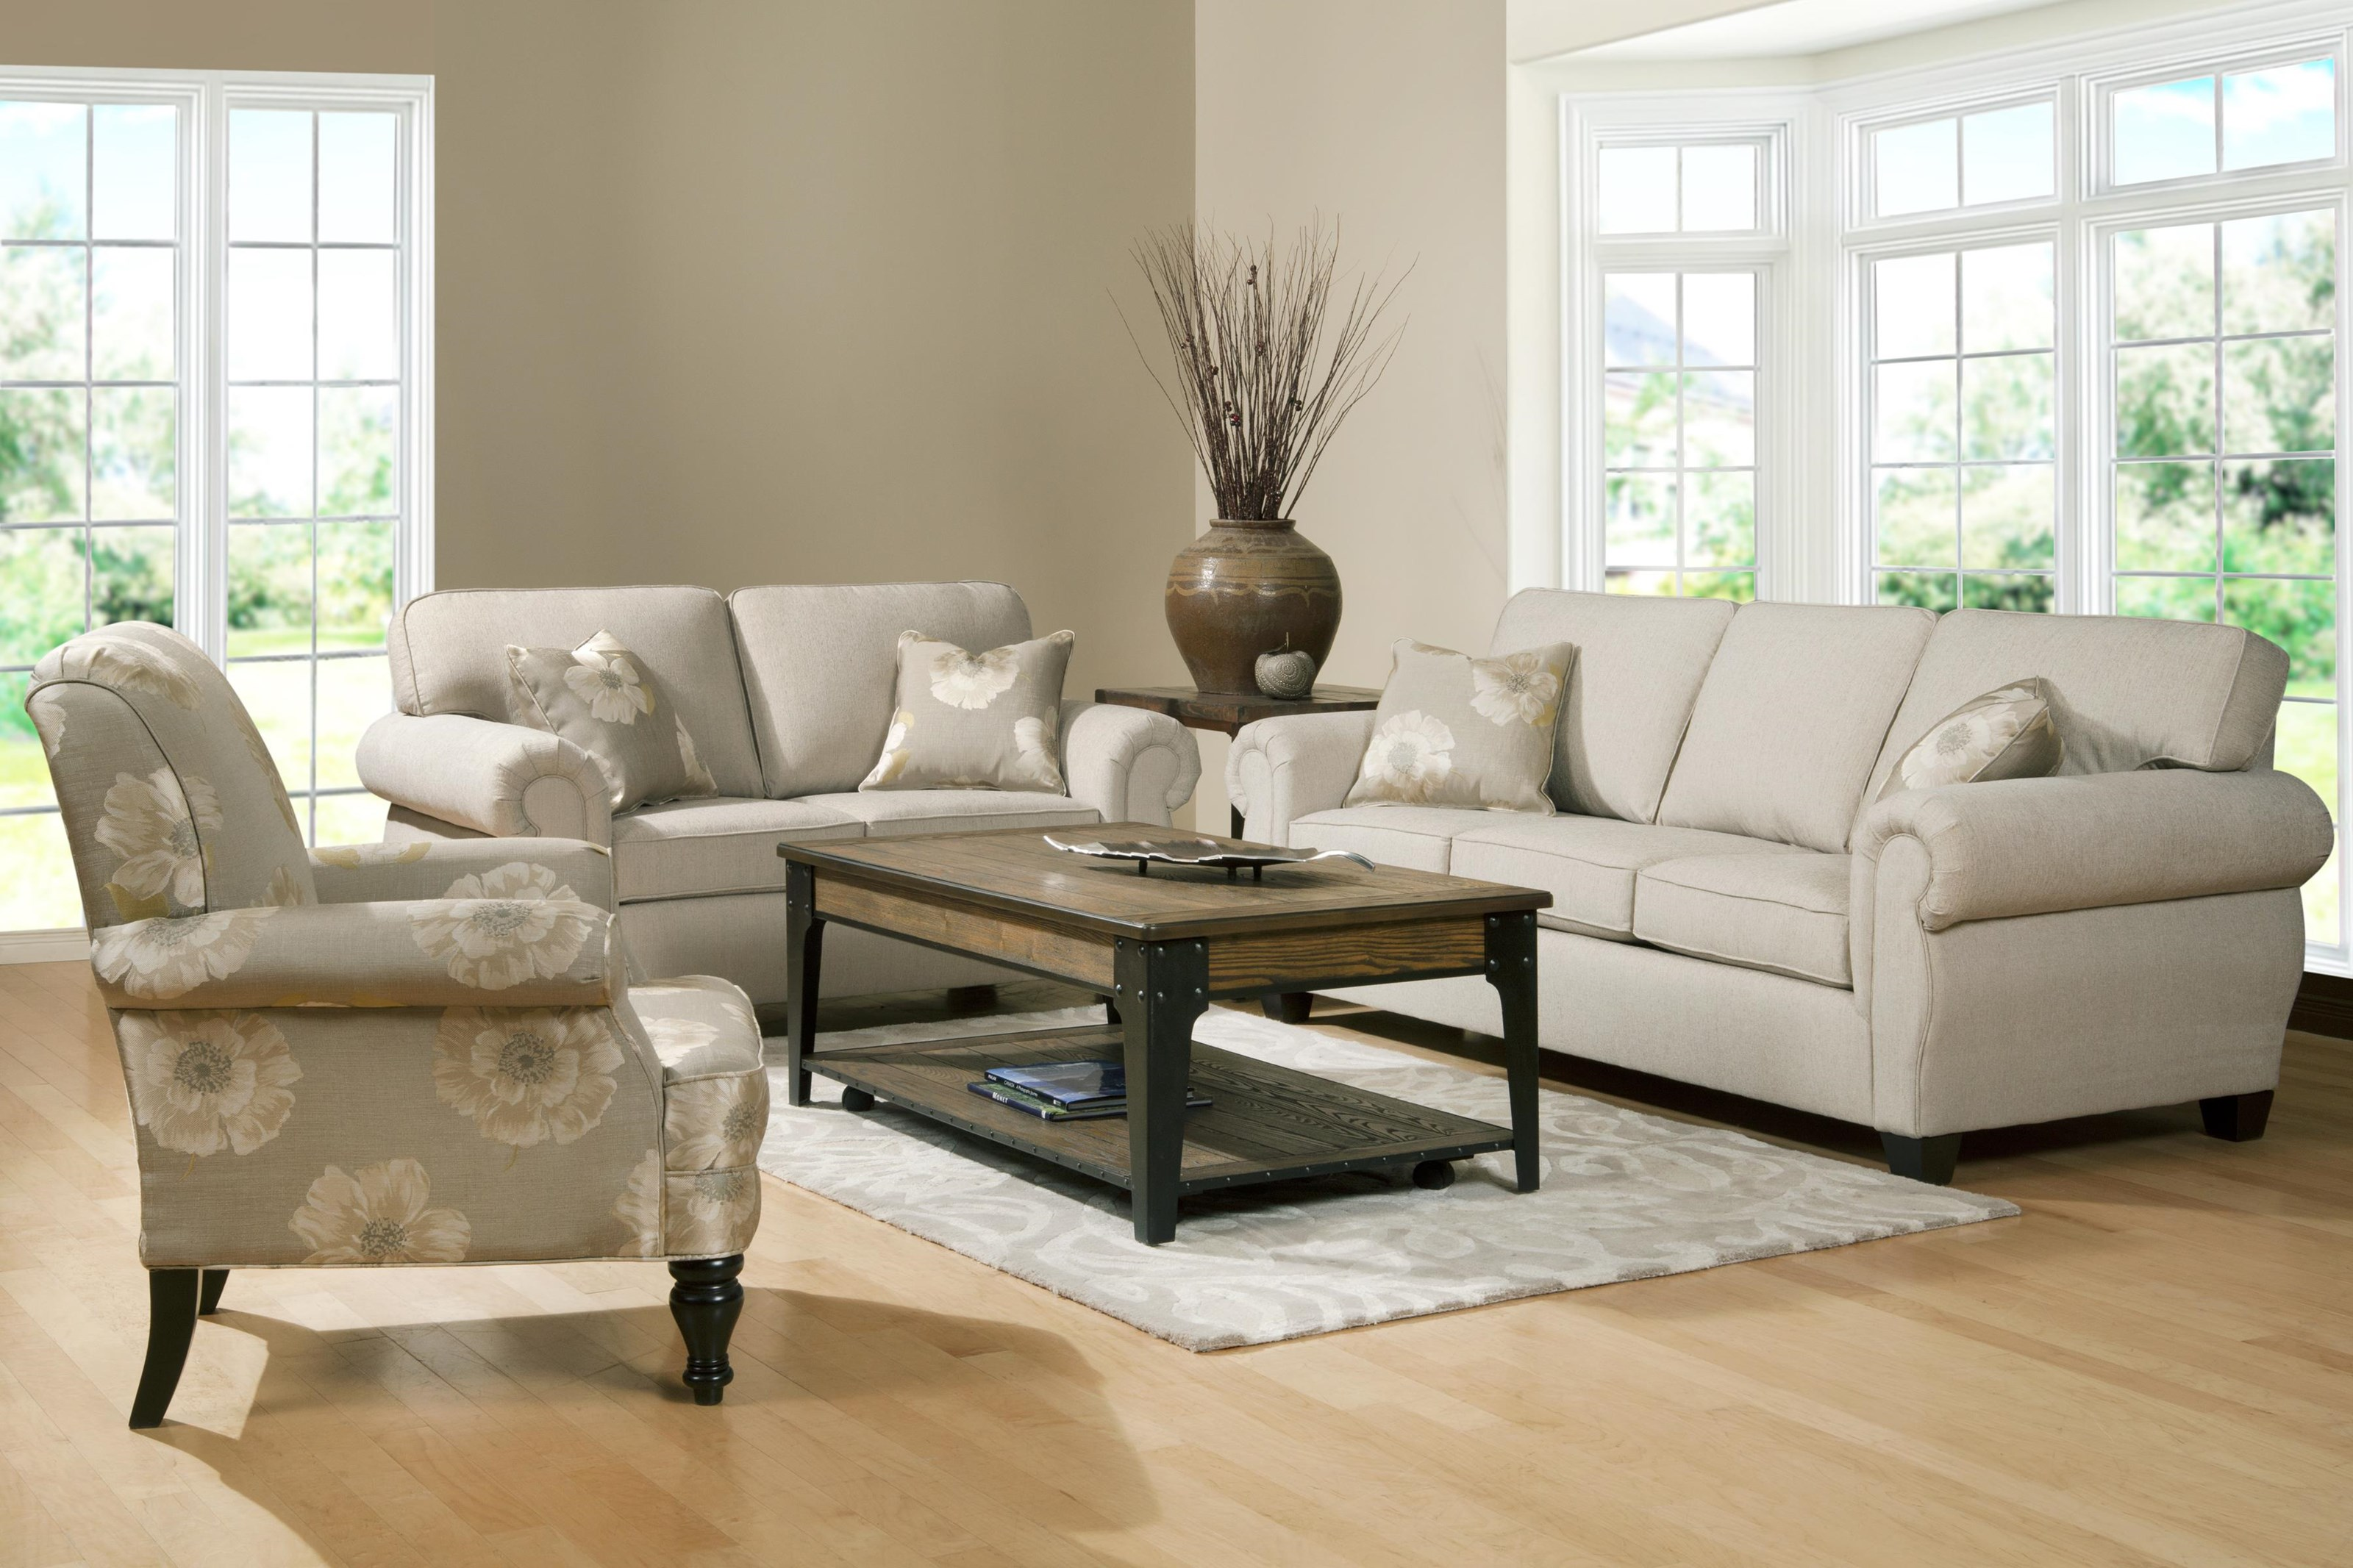 Superstyle 9555 Loveseat - Item Number: 85955502-01